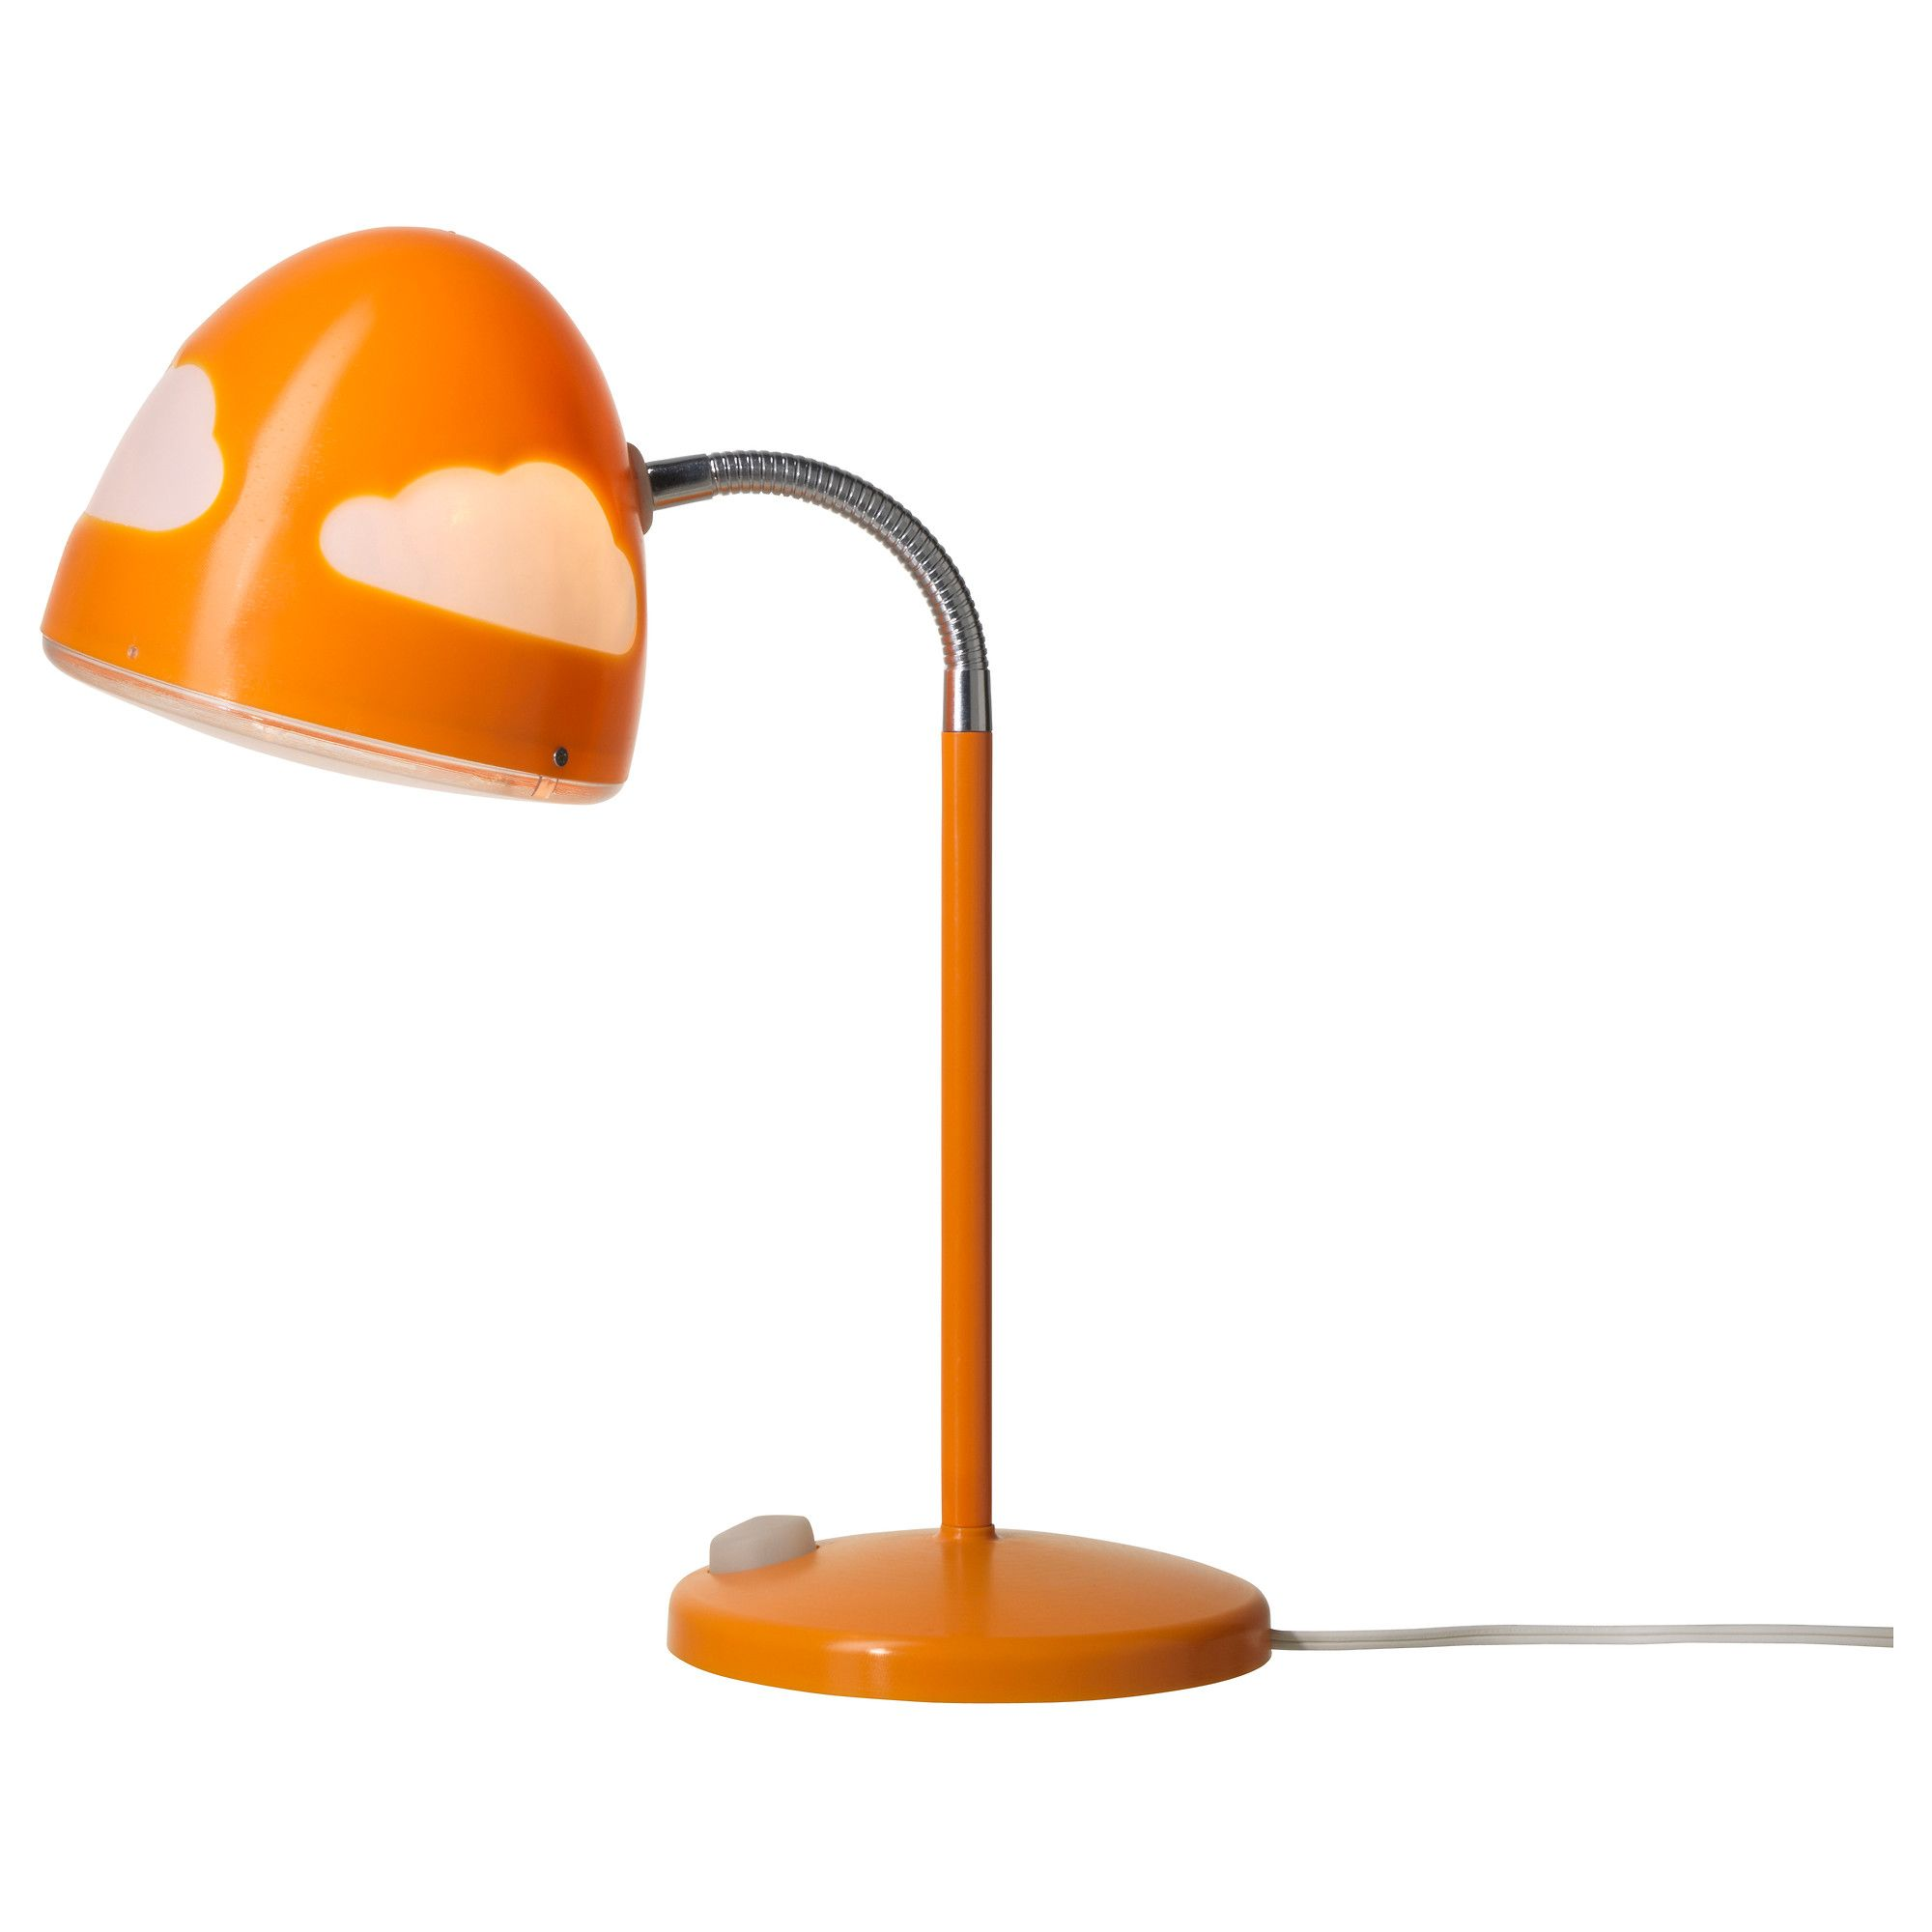 Skojig Work Lamp Ikea Lamp Childrens Lighting Work Lamp